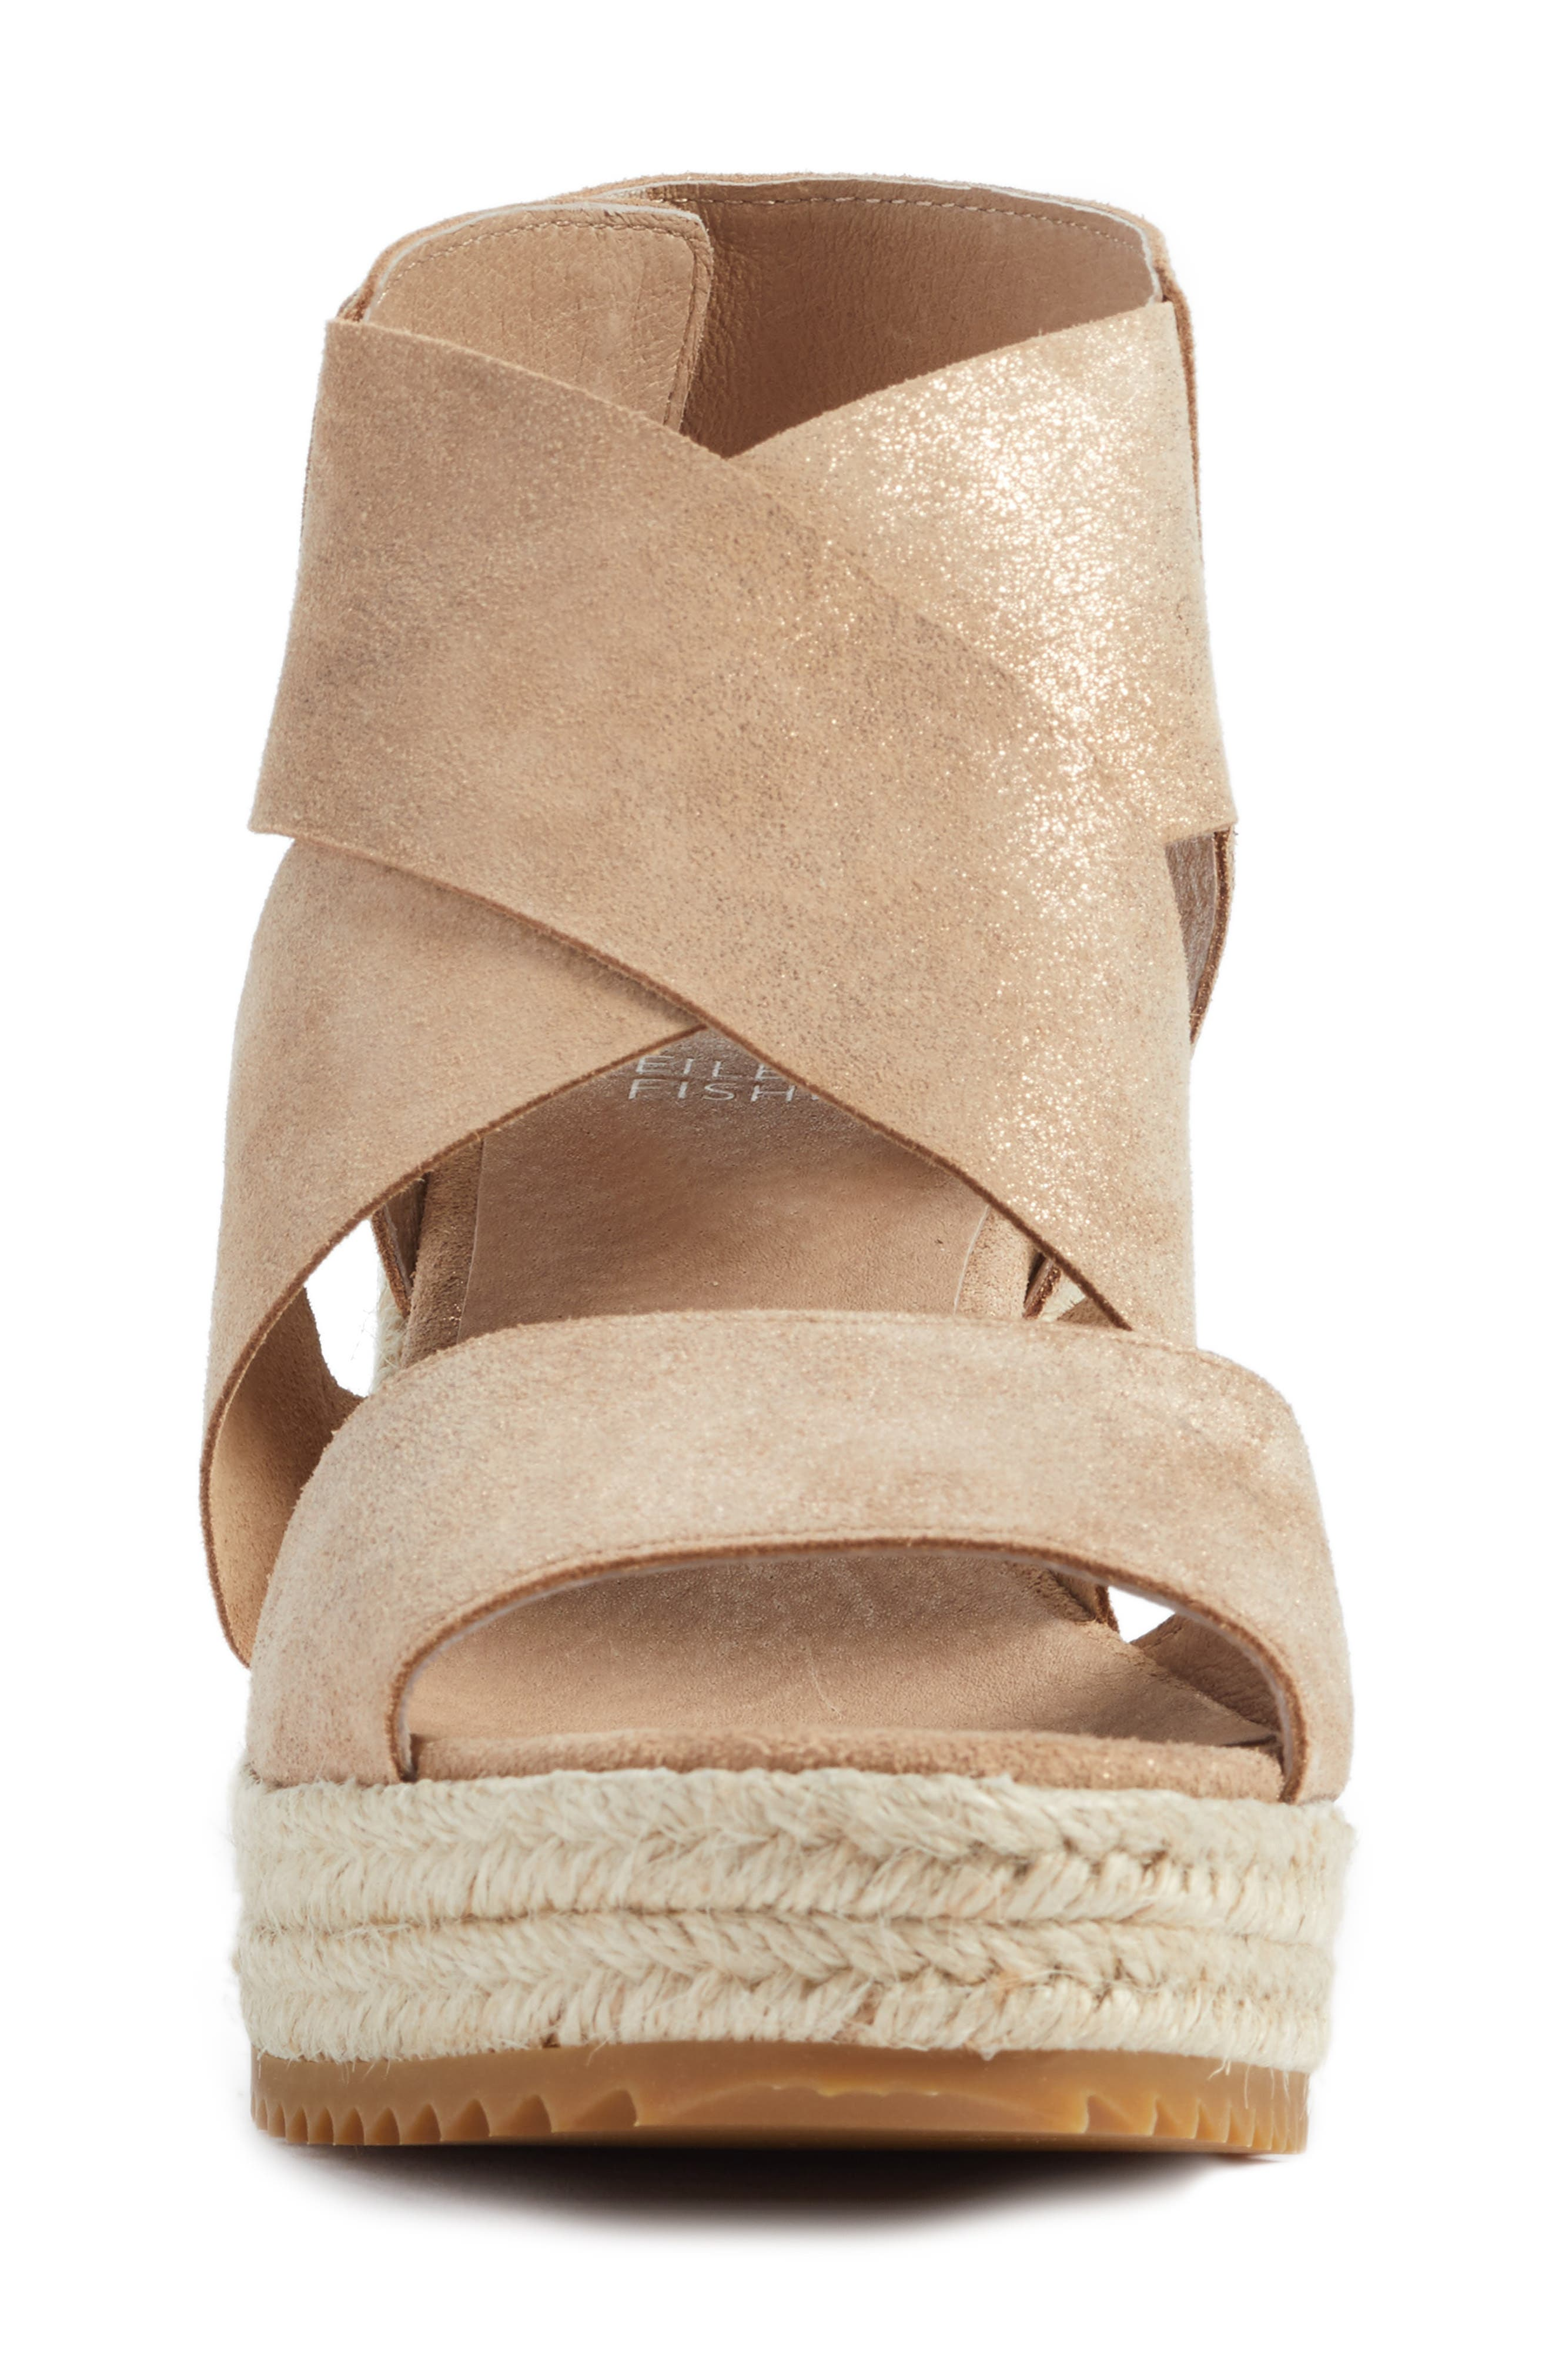 'Willow' Espadrille Wedge Sandal,                             Alternate thumbnail 4, color,                             LIGHT GOLD STARRY LEATHER